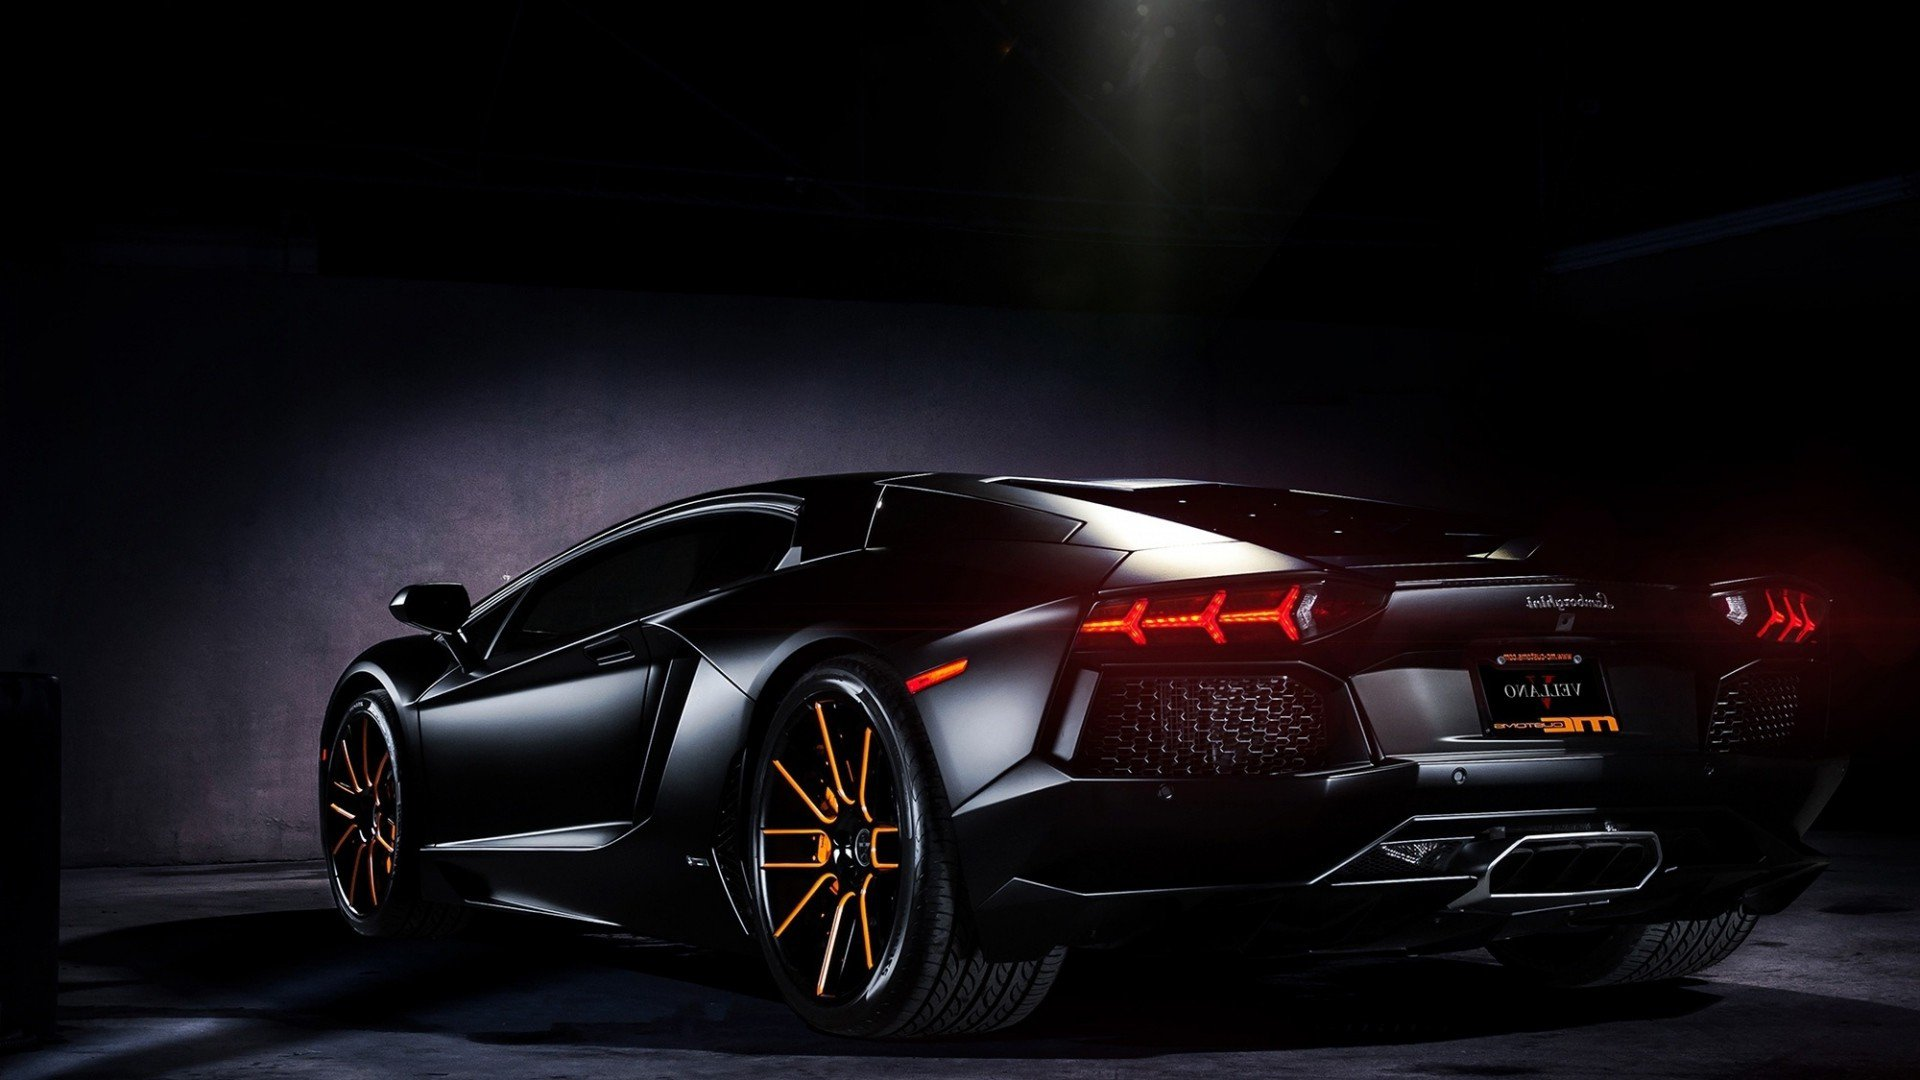 1920x1080 Lamborghini Black Laptop Full Hd 1080p Hd 4k Wallpapers